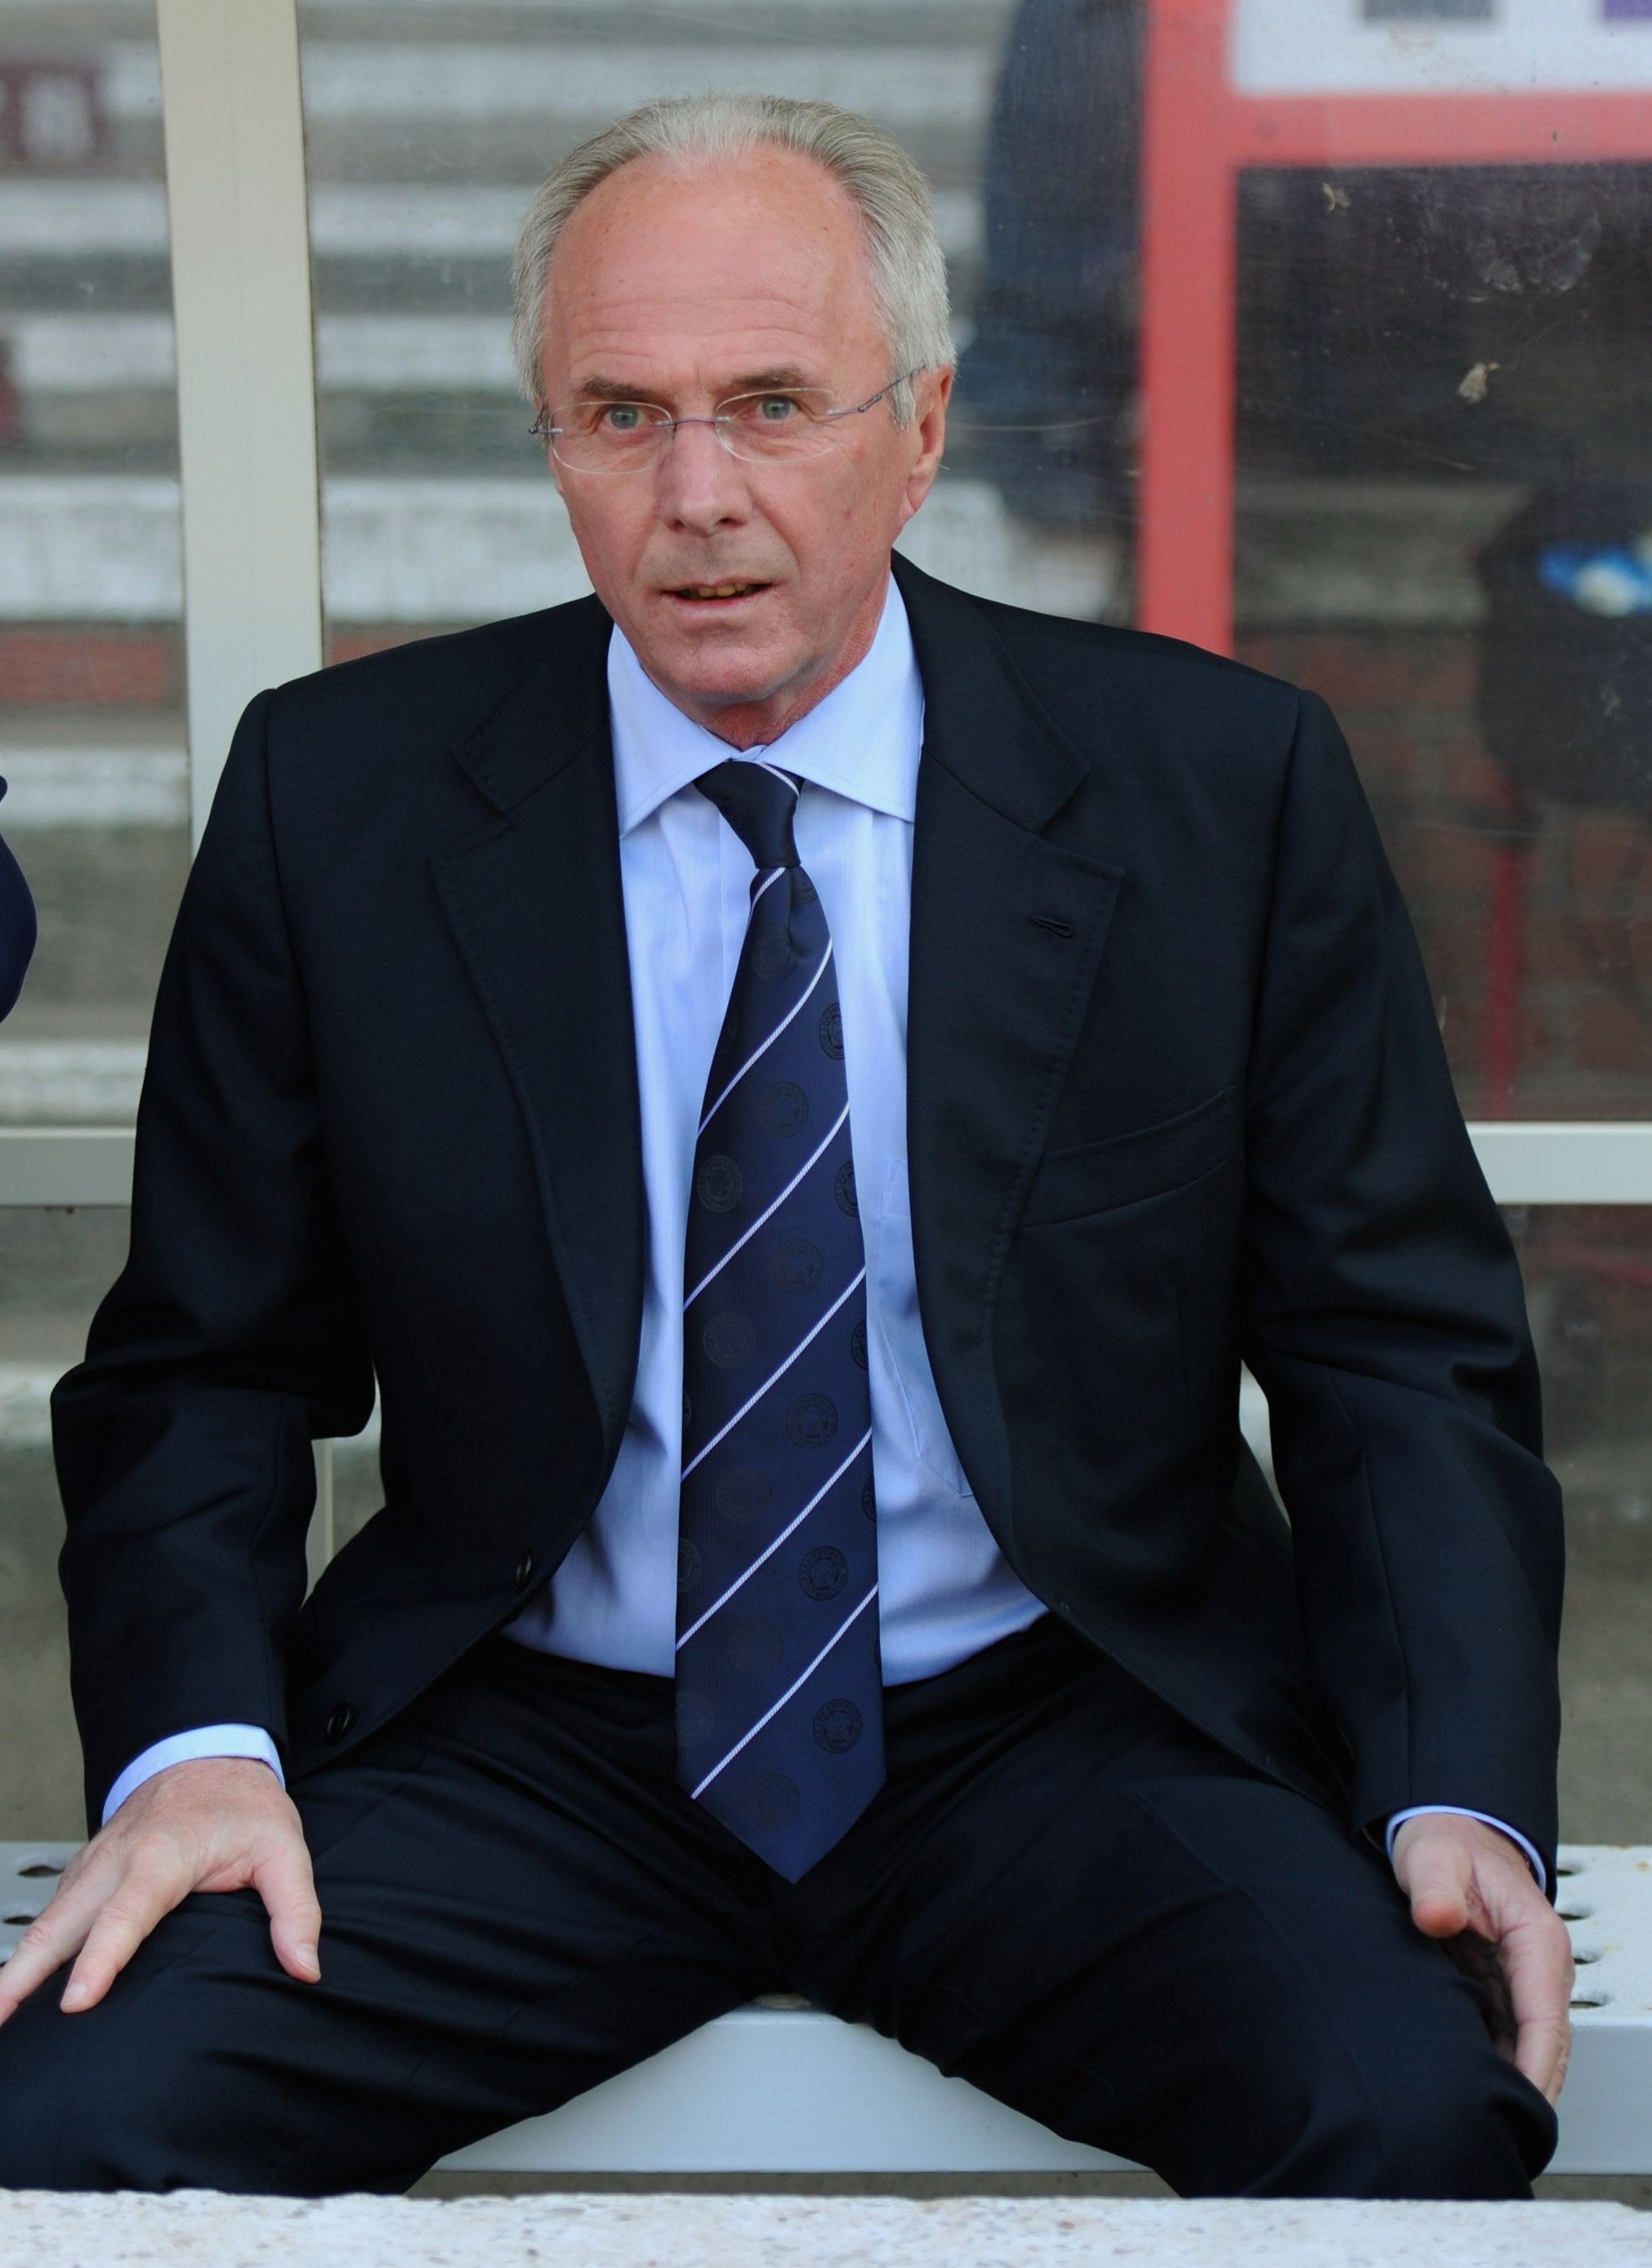 NOTTINGHAM, ENGLAND - APRIL 22:  Leicester manager Sven Goran Eriksson looks on before the npower Championship match between Nottingham Forest and Leicester City at the City Ground on April 22, 2011 in Nottingham, England.  (Photo by Michael Regan/Getty I